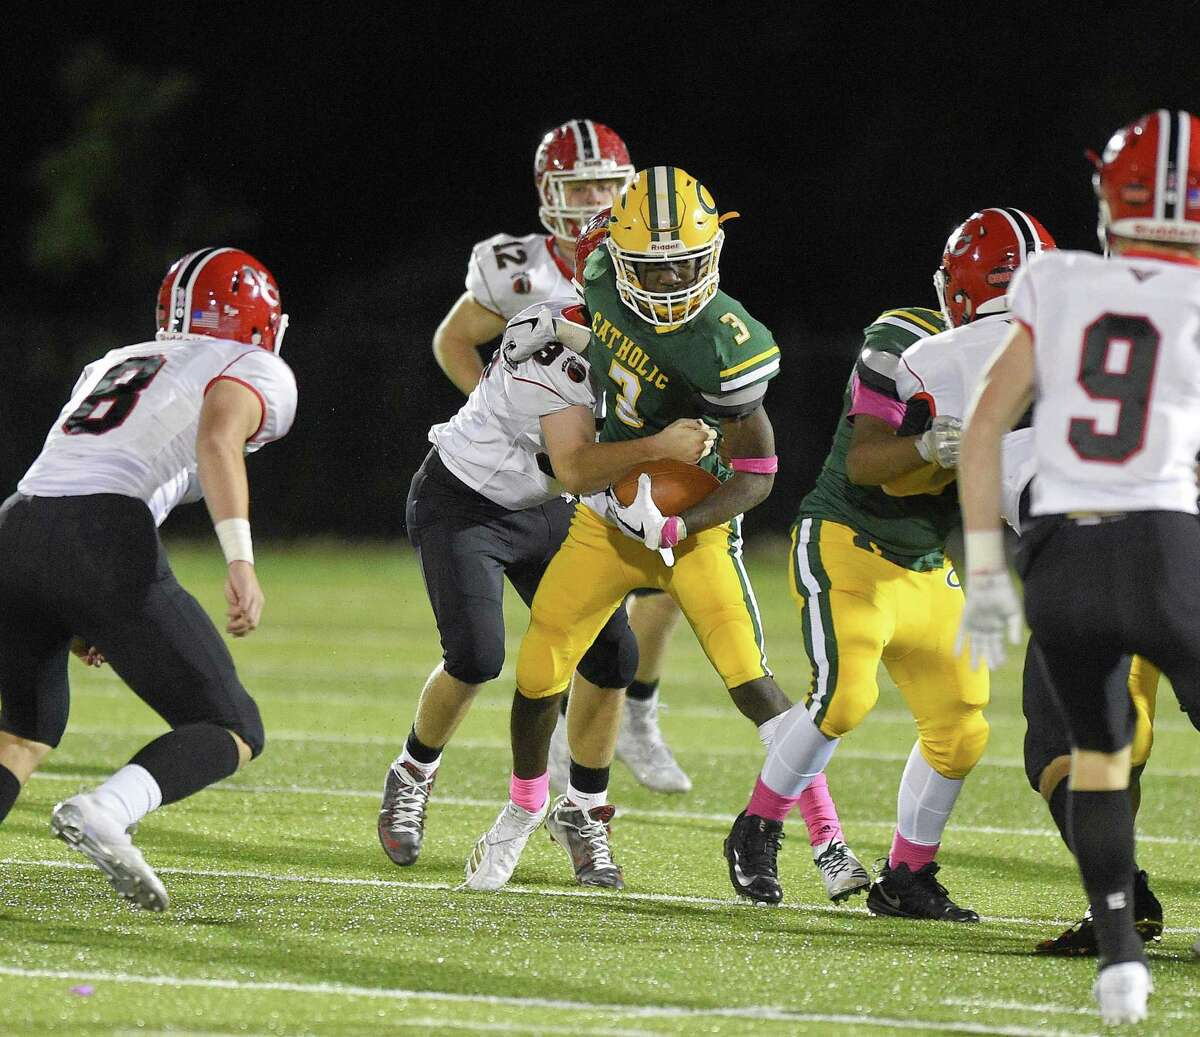 Trinity Catholic's Tahj Morgan carries the ball against New Canaan on Oct. 19.